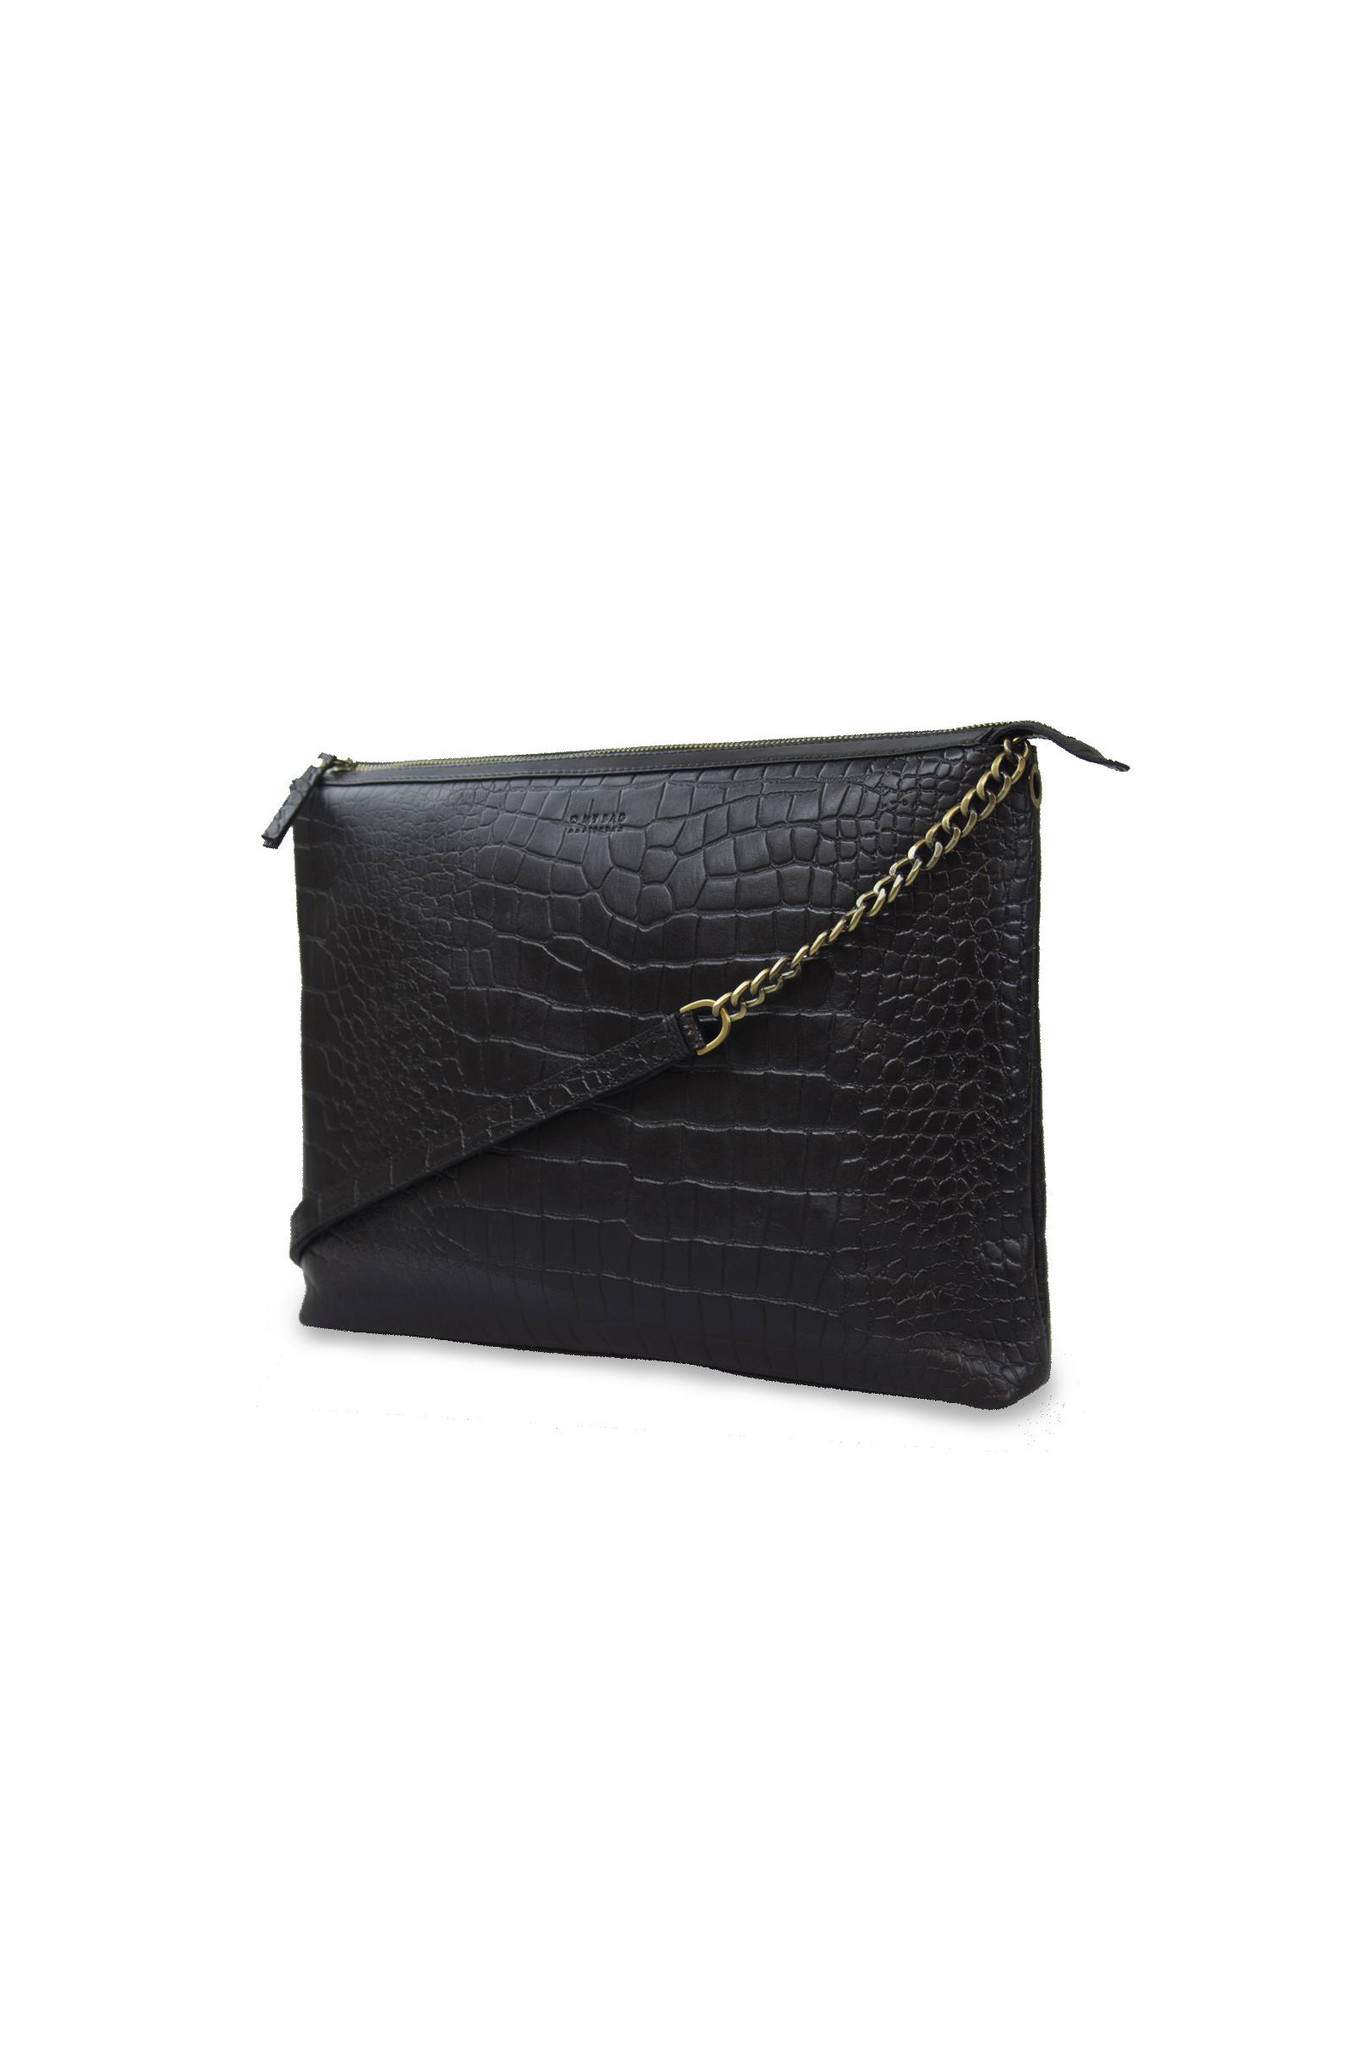 Scarlet Bag - Black Croco Classic Leather-2